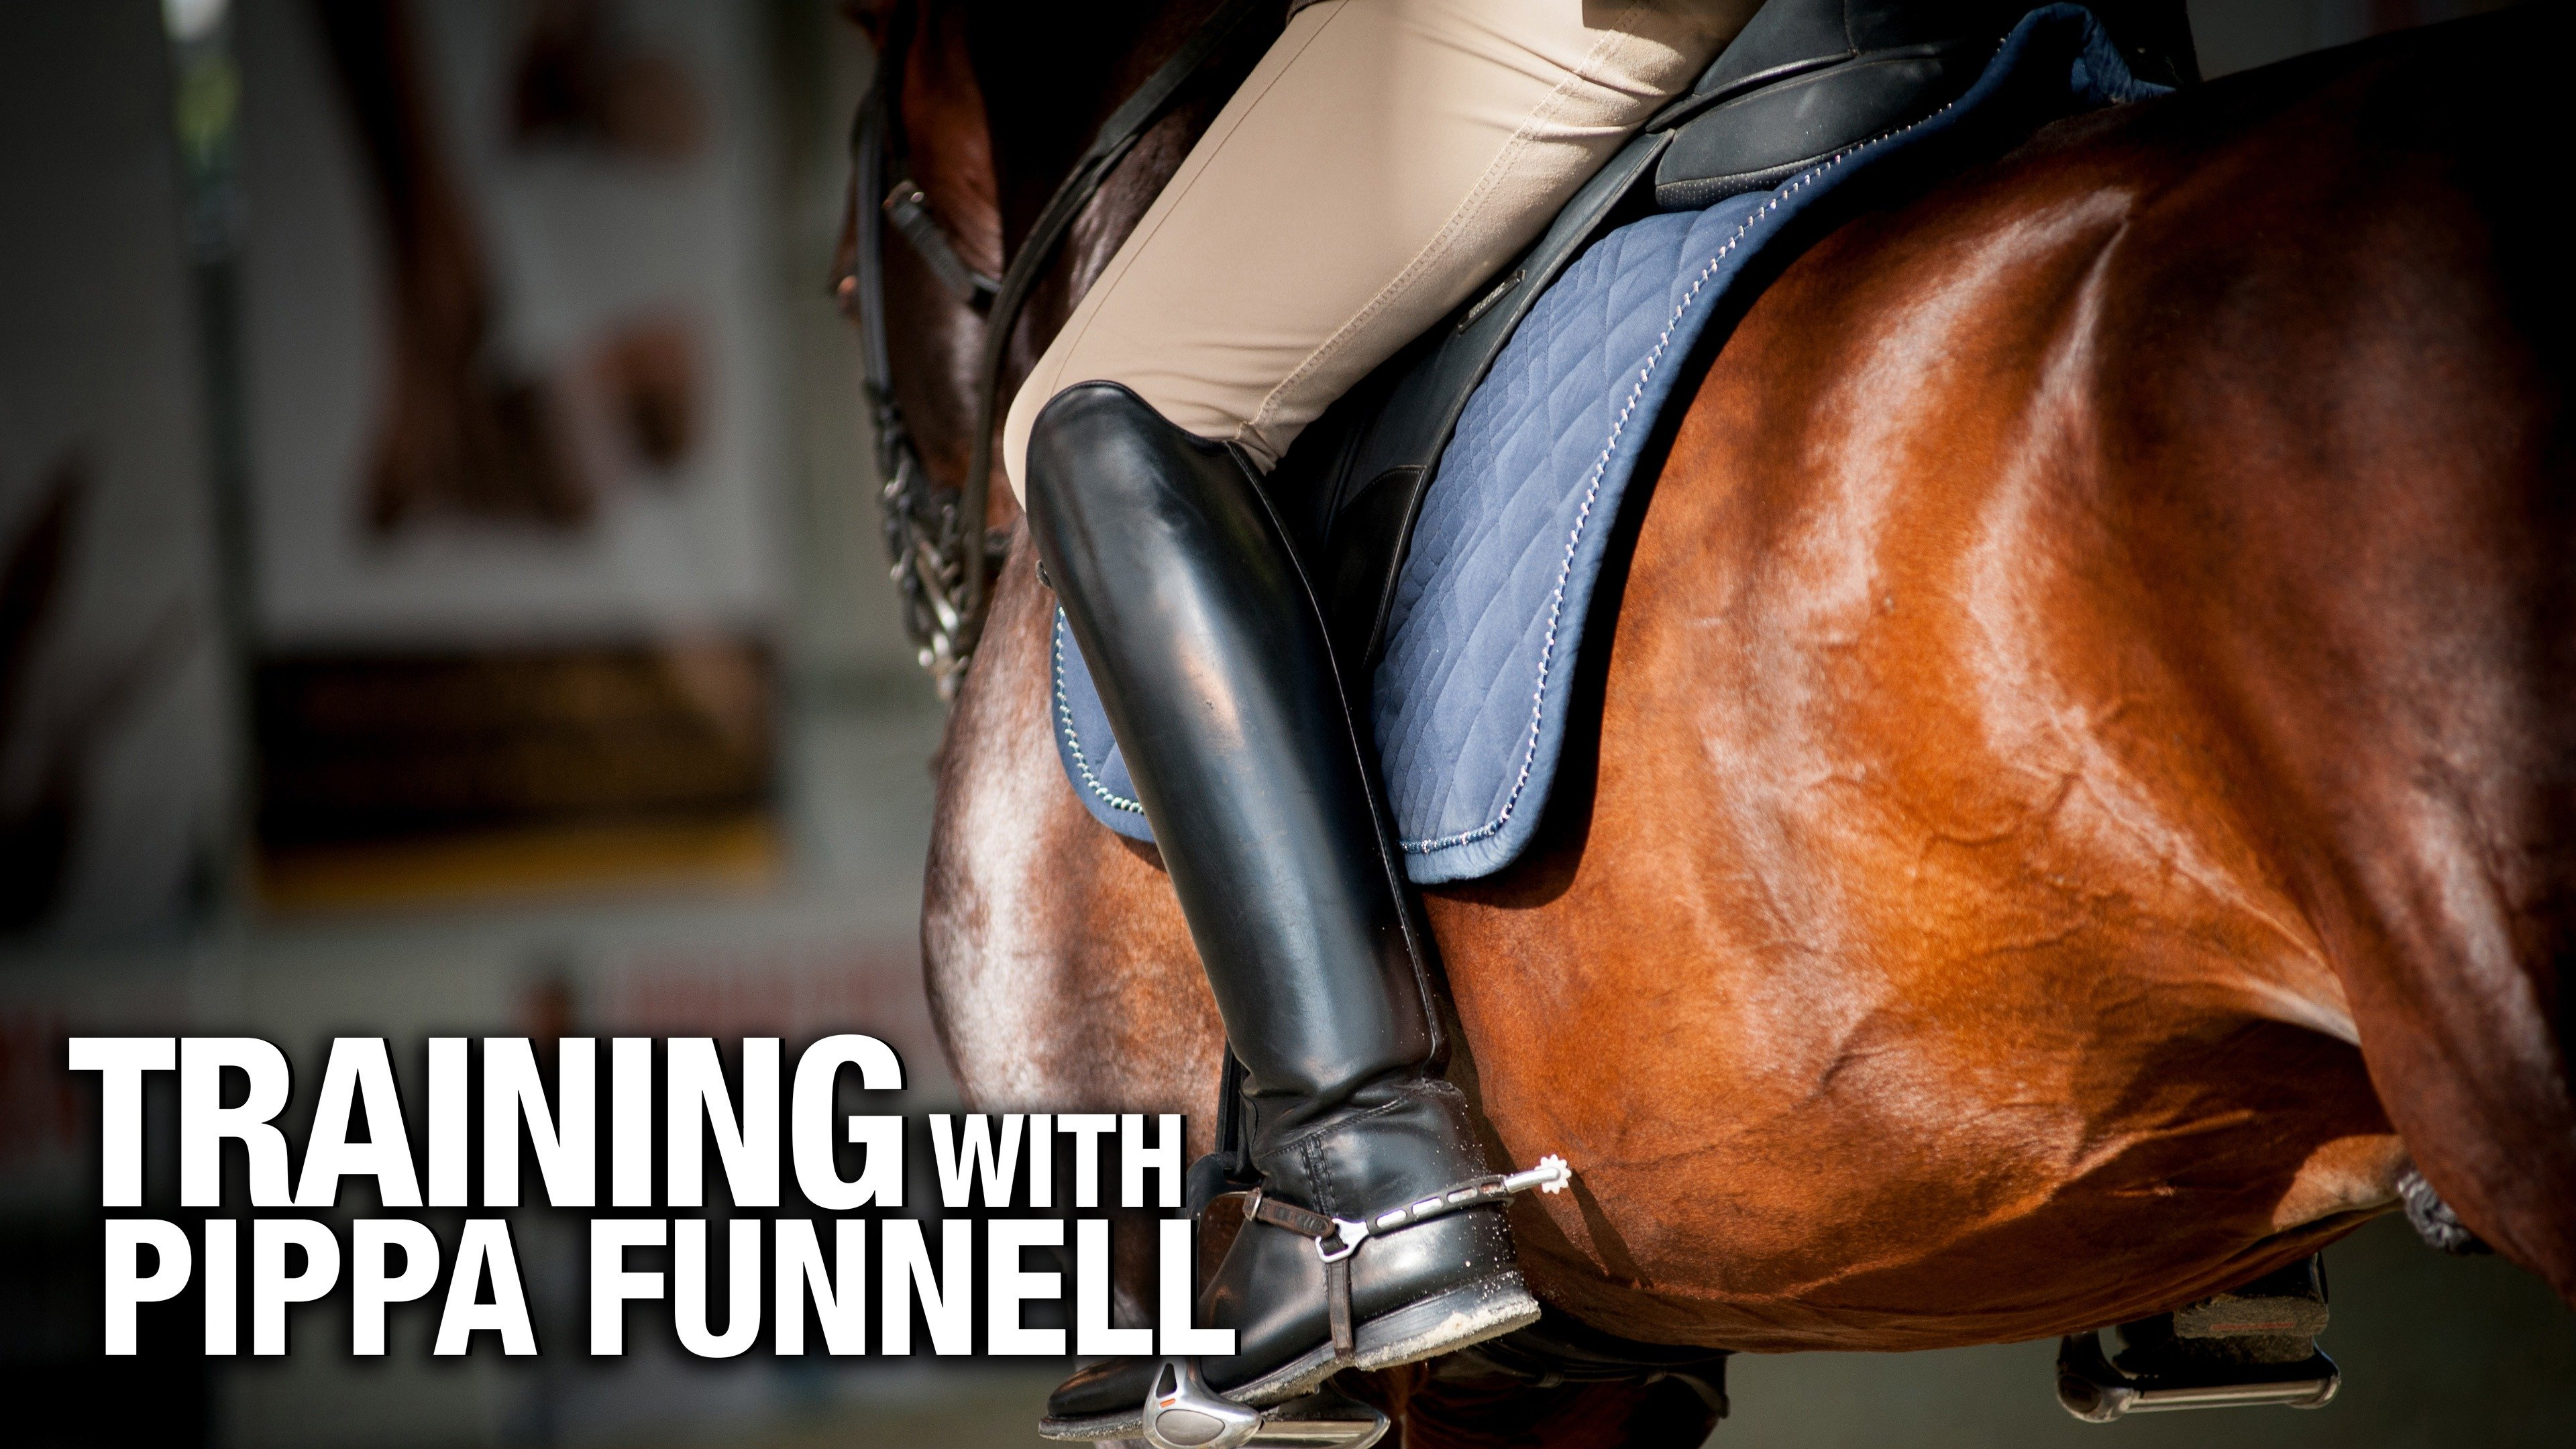 Training with Pippa Funnell